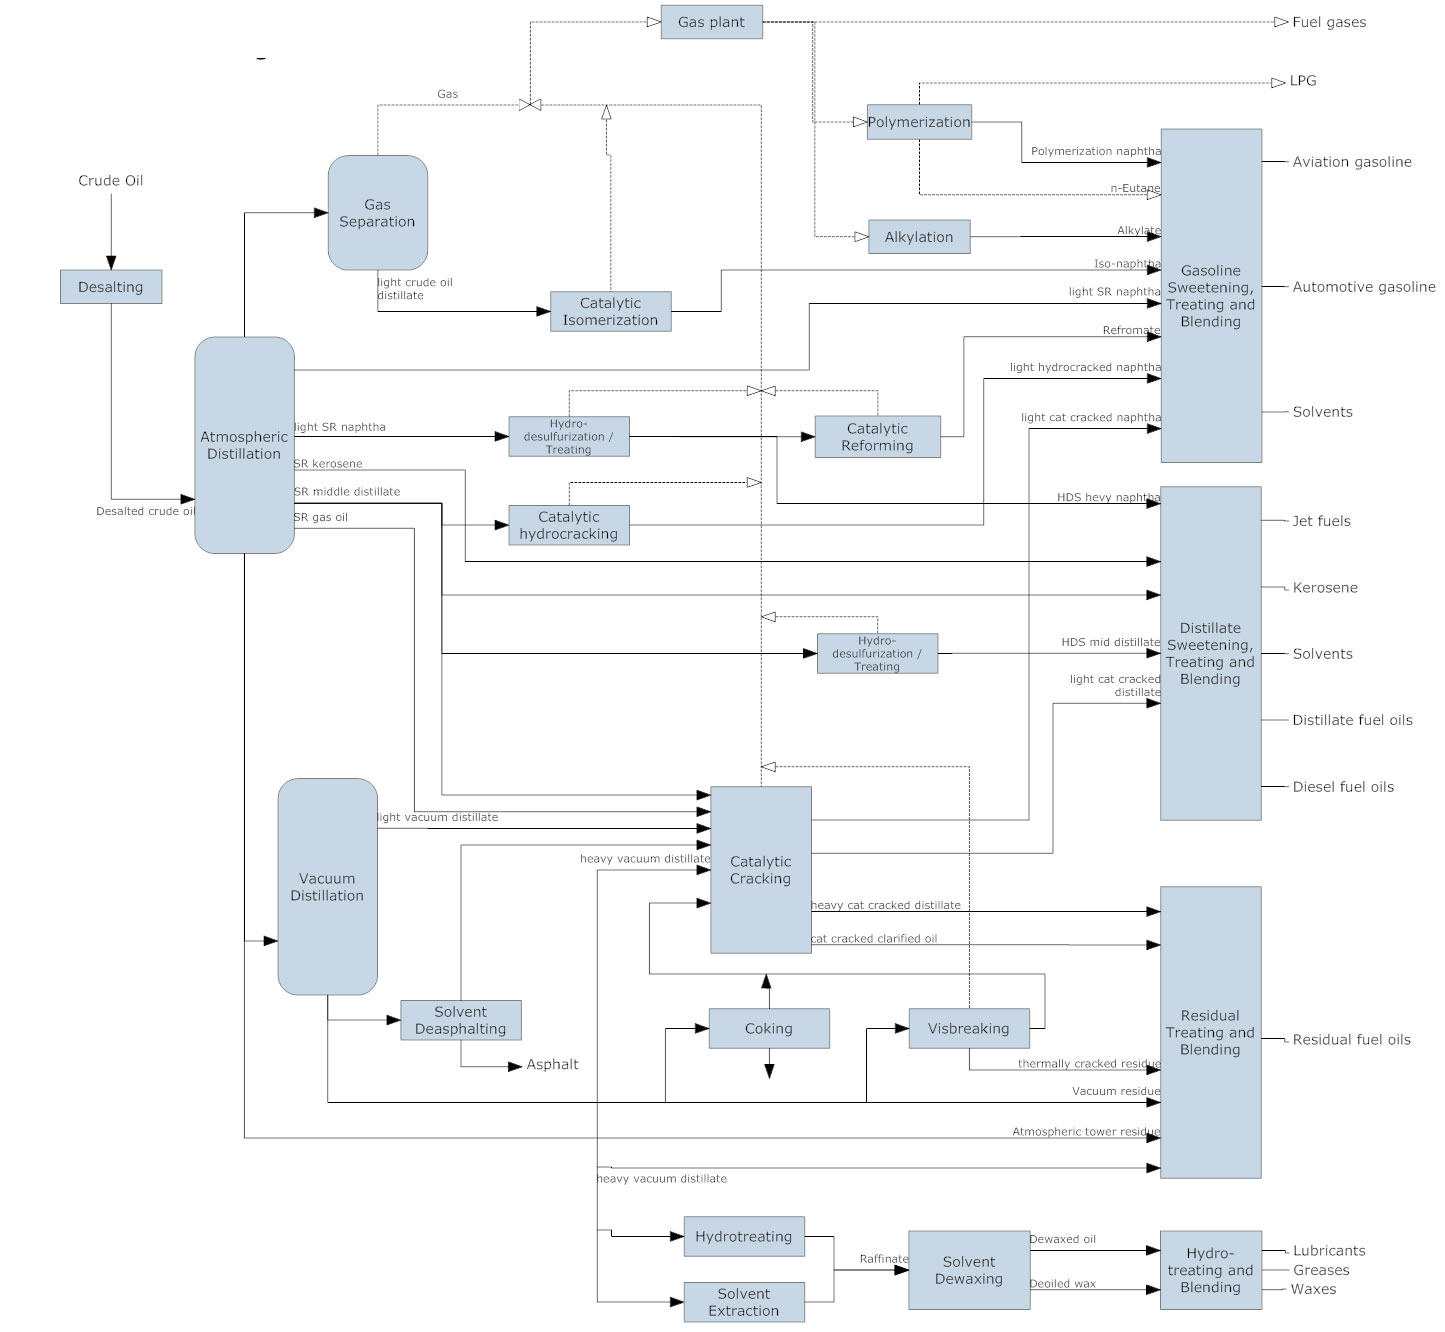 flowchart types and flowchart uses rh smartdraw com